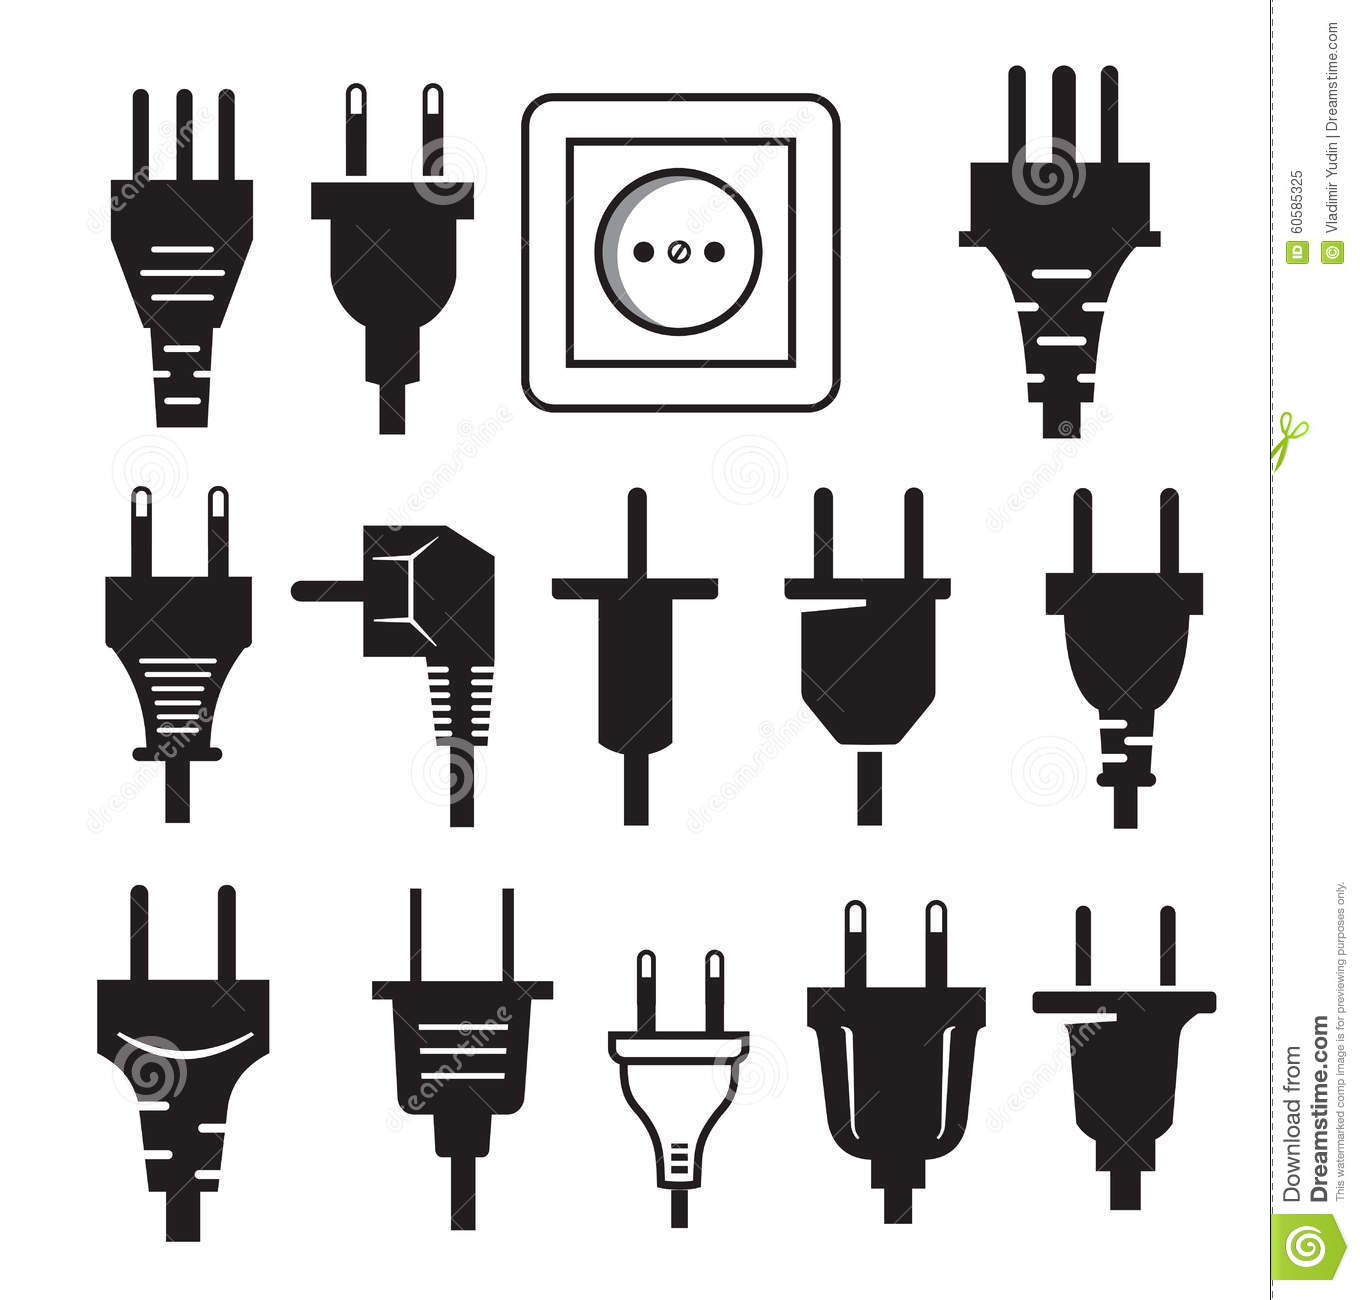 Plug Icon Stock Vector Illustration Of Cable Switch